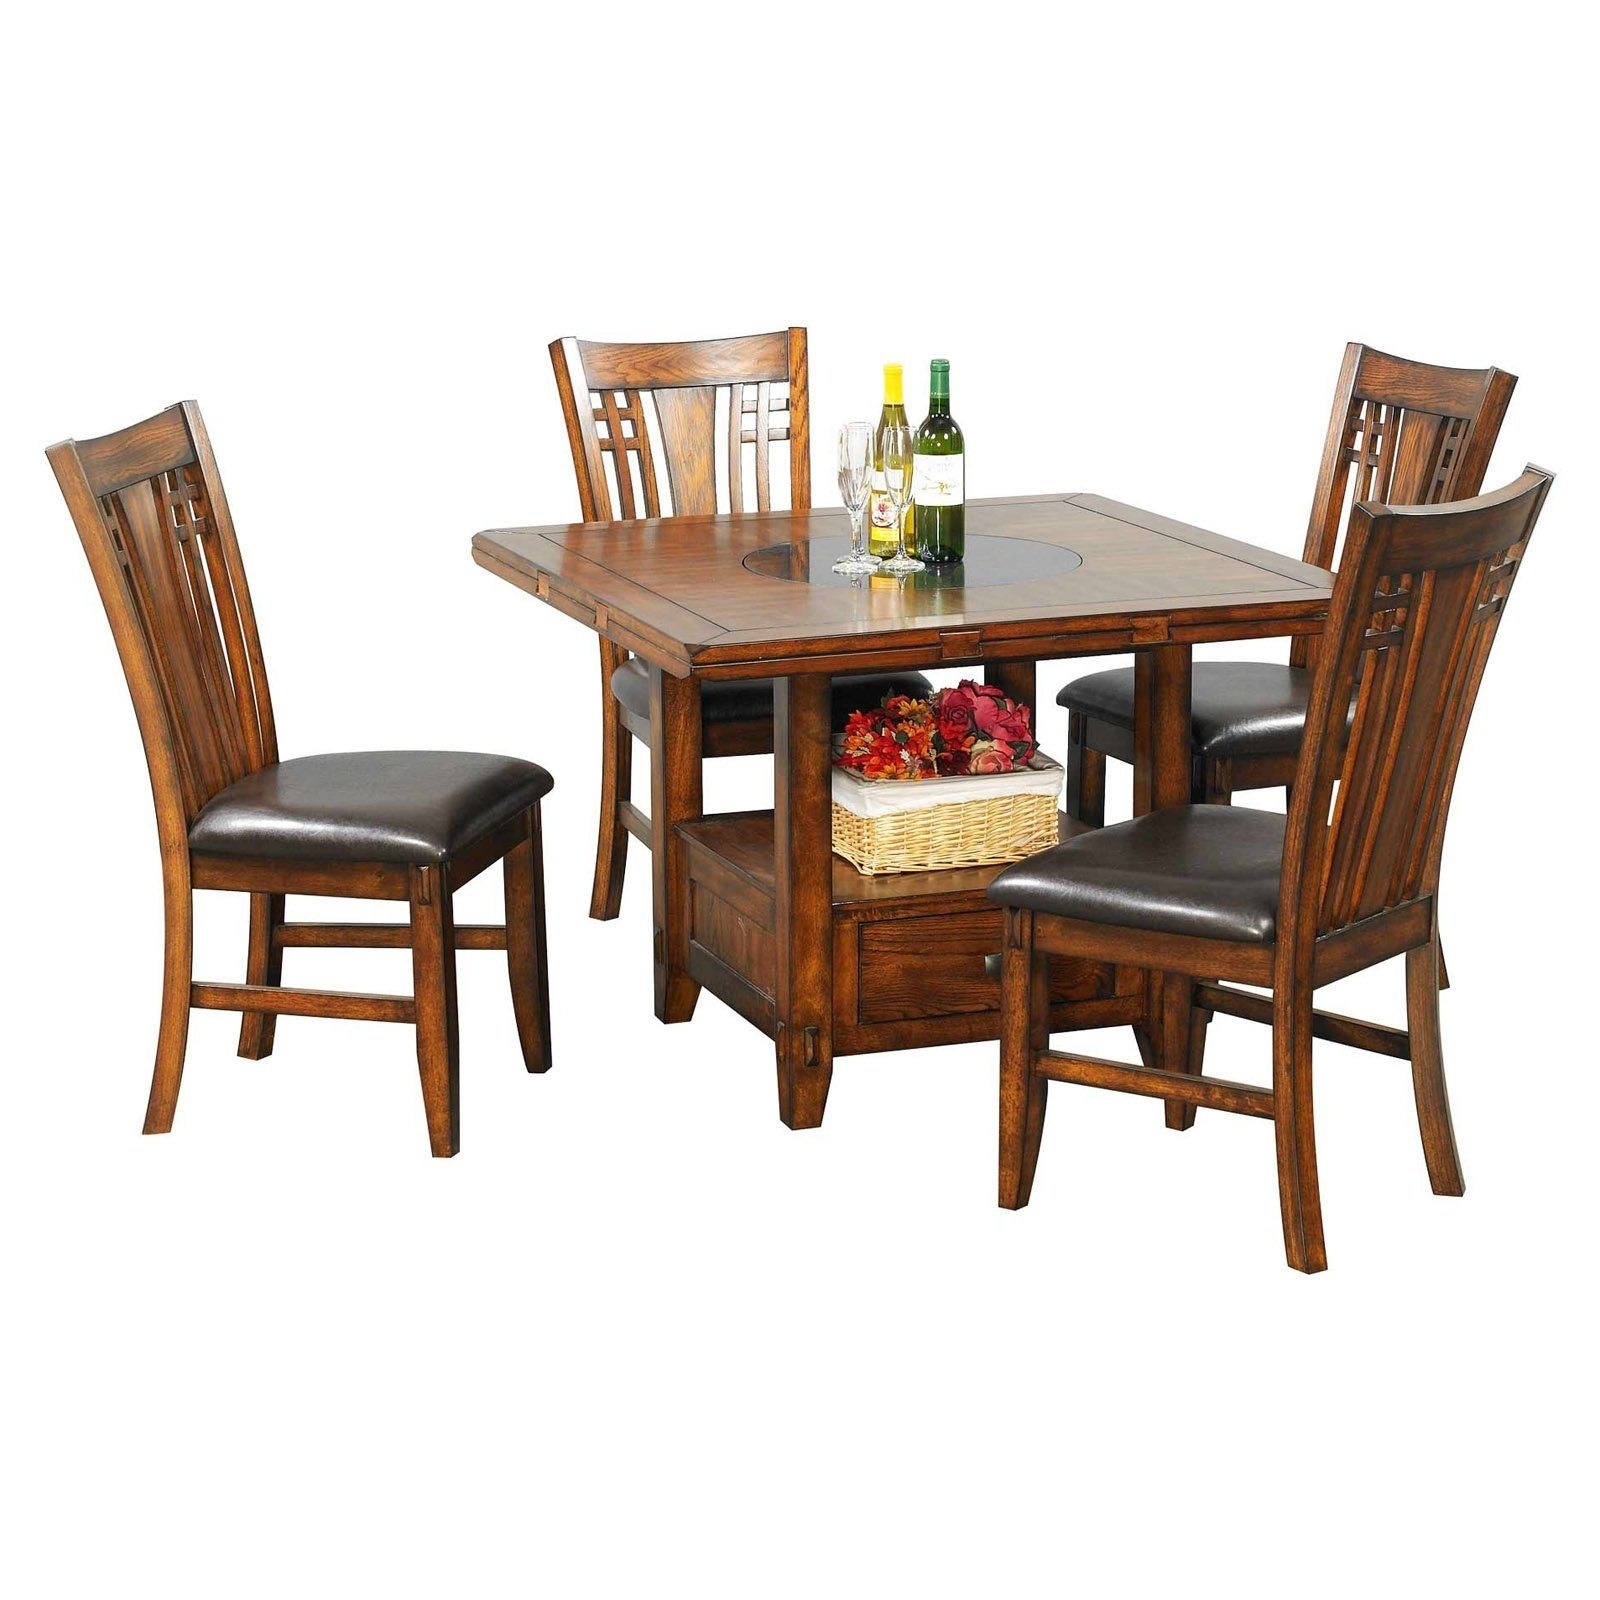 Winners Only Zahara 5 Piece Dining Table Set With Granite Lazy Susan In 2017 Craftsman 5 Piece Round Dining Sets With Side Chairs (Image 20 of 20)